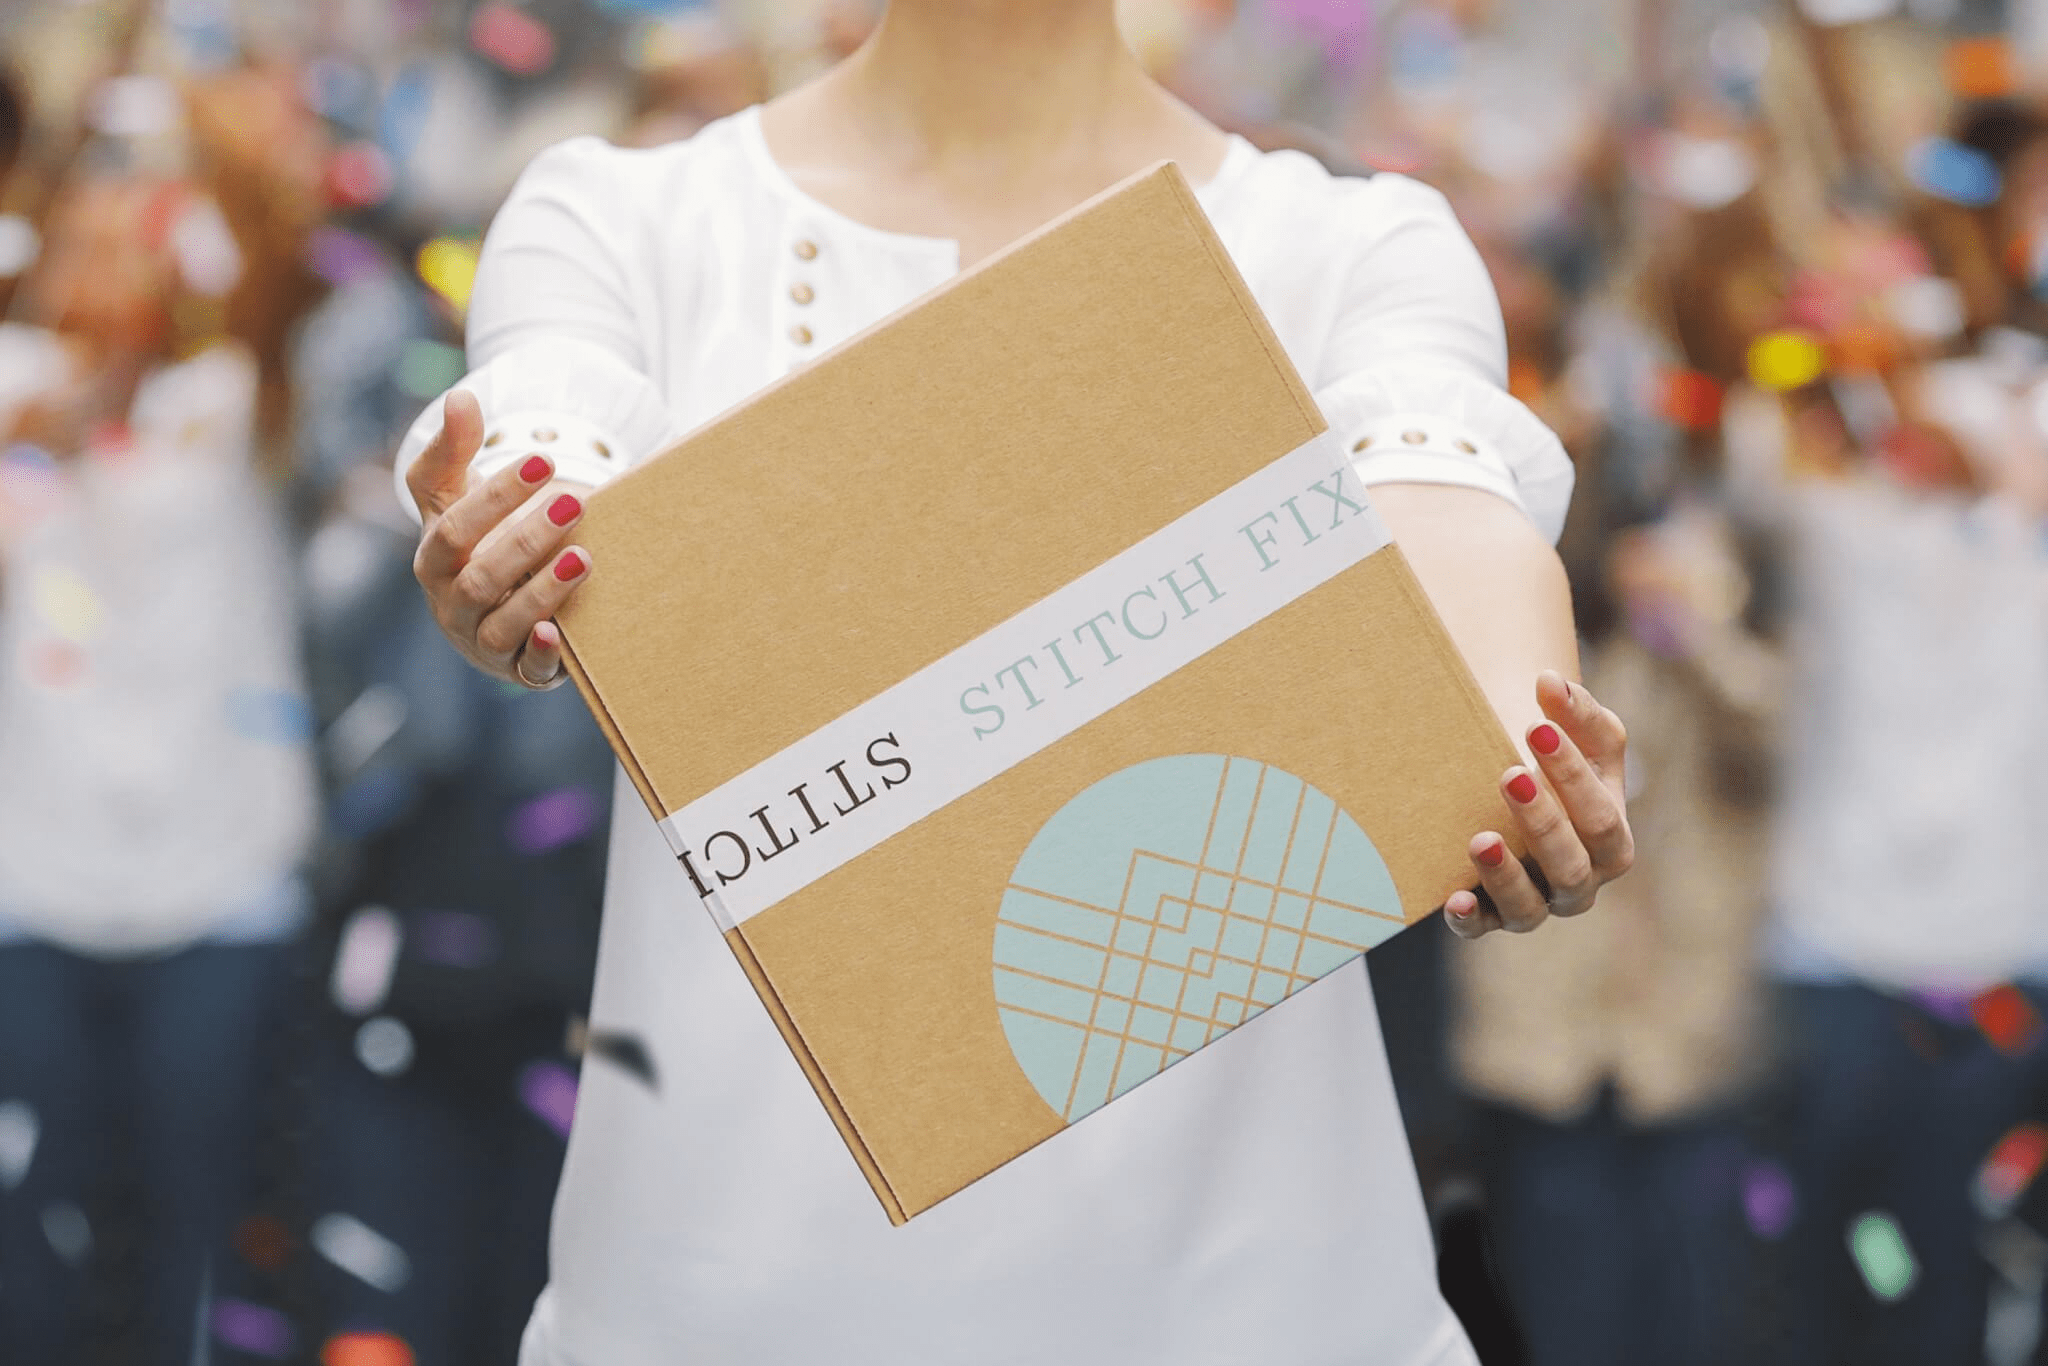 Stitch Fix Cyber Monday Sale: Get your first box styling fee waived!!